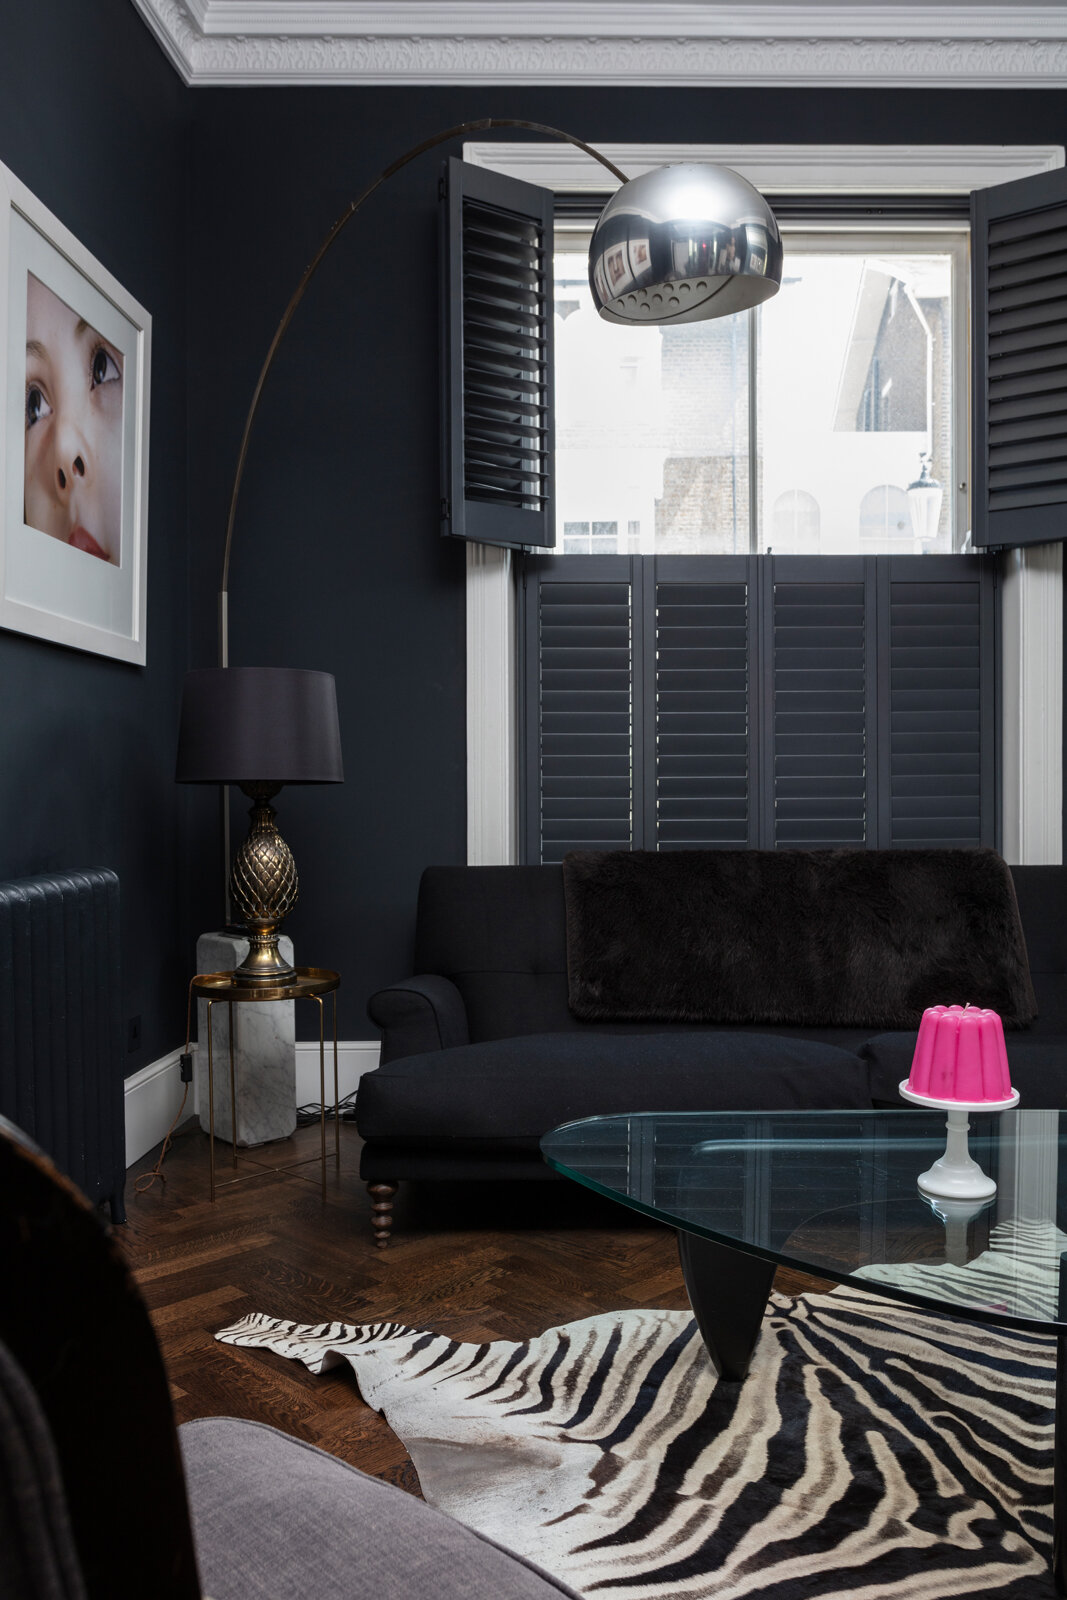 Black sitting room with shutters and zebra skin rug